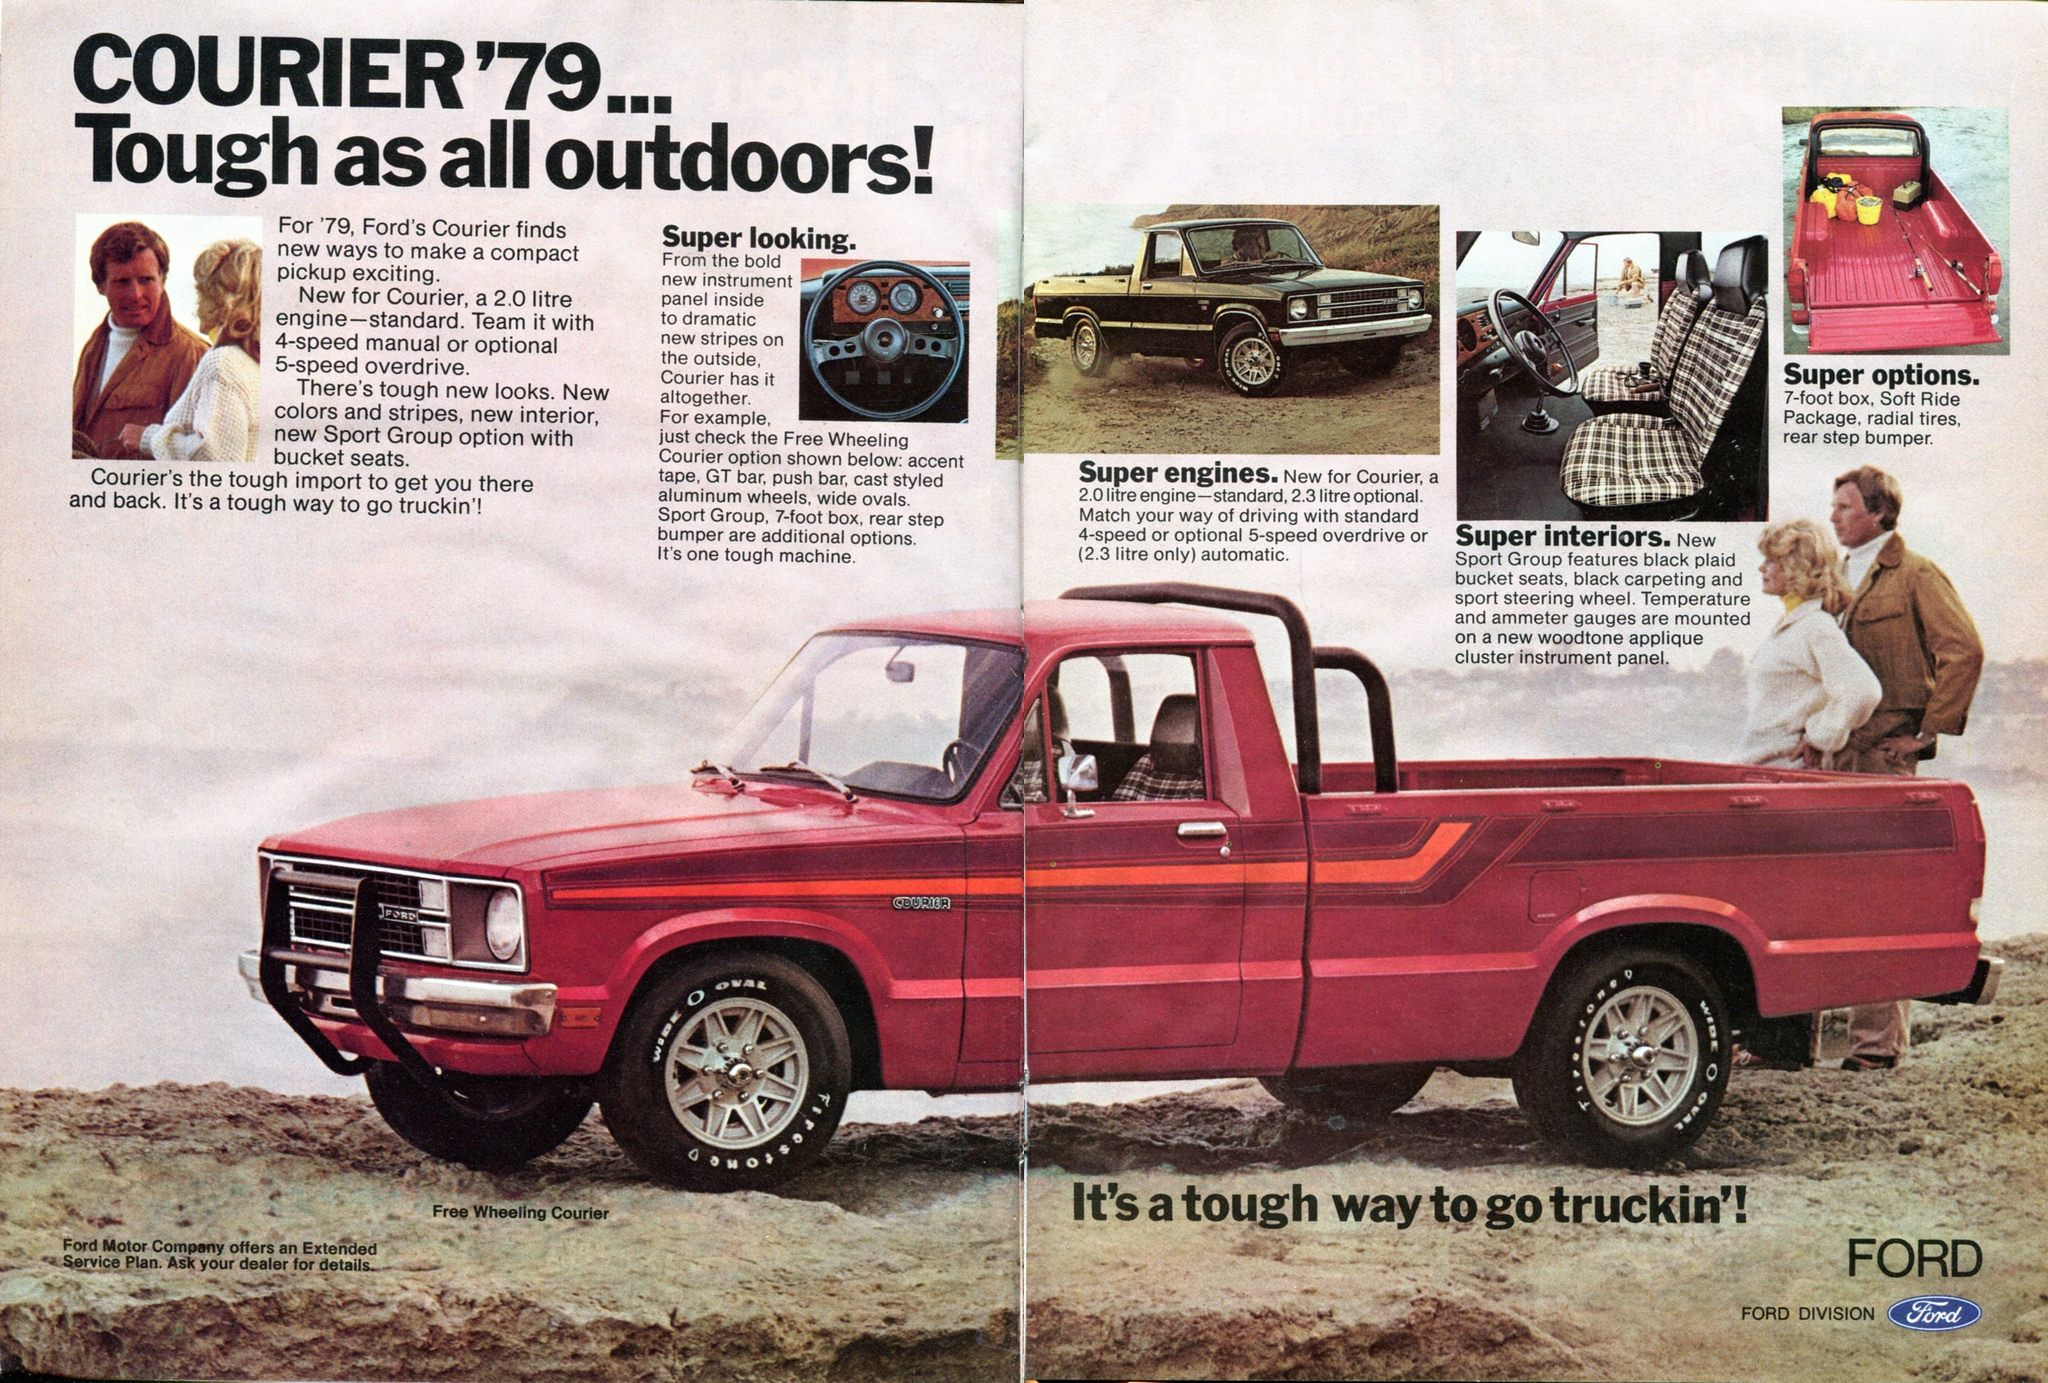 1979 Ford Courier Pickup Truck Advertisement Hot Rod December 1978 Ford Courier Trucks Ford